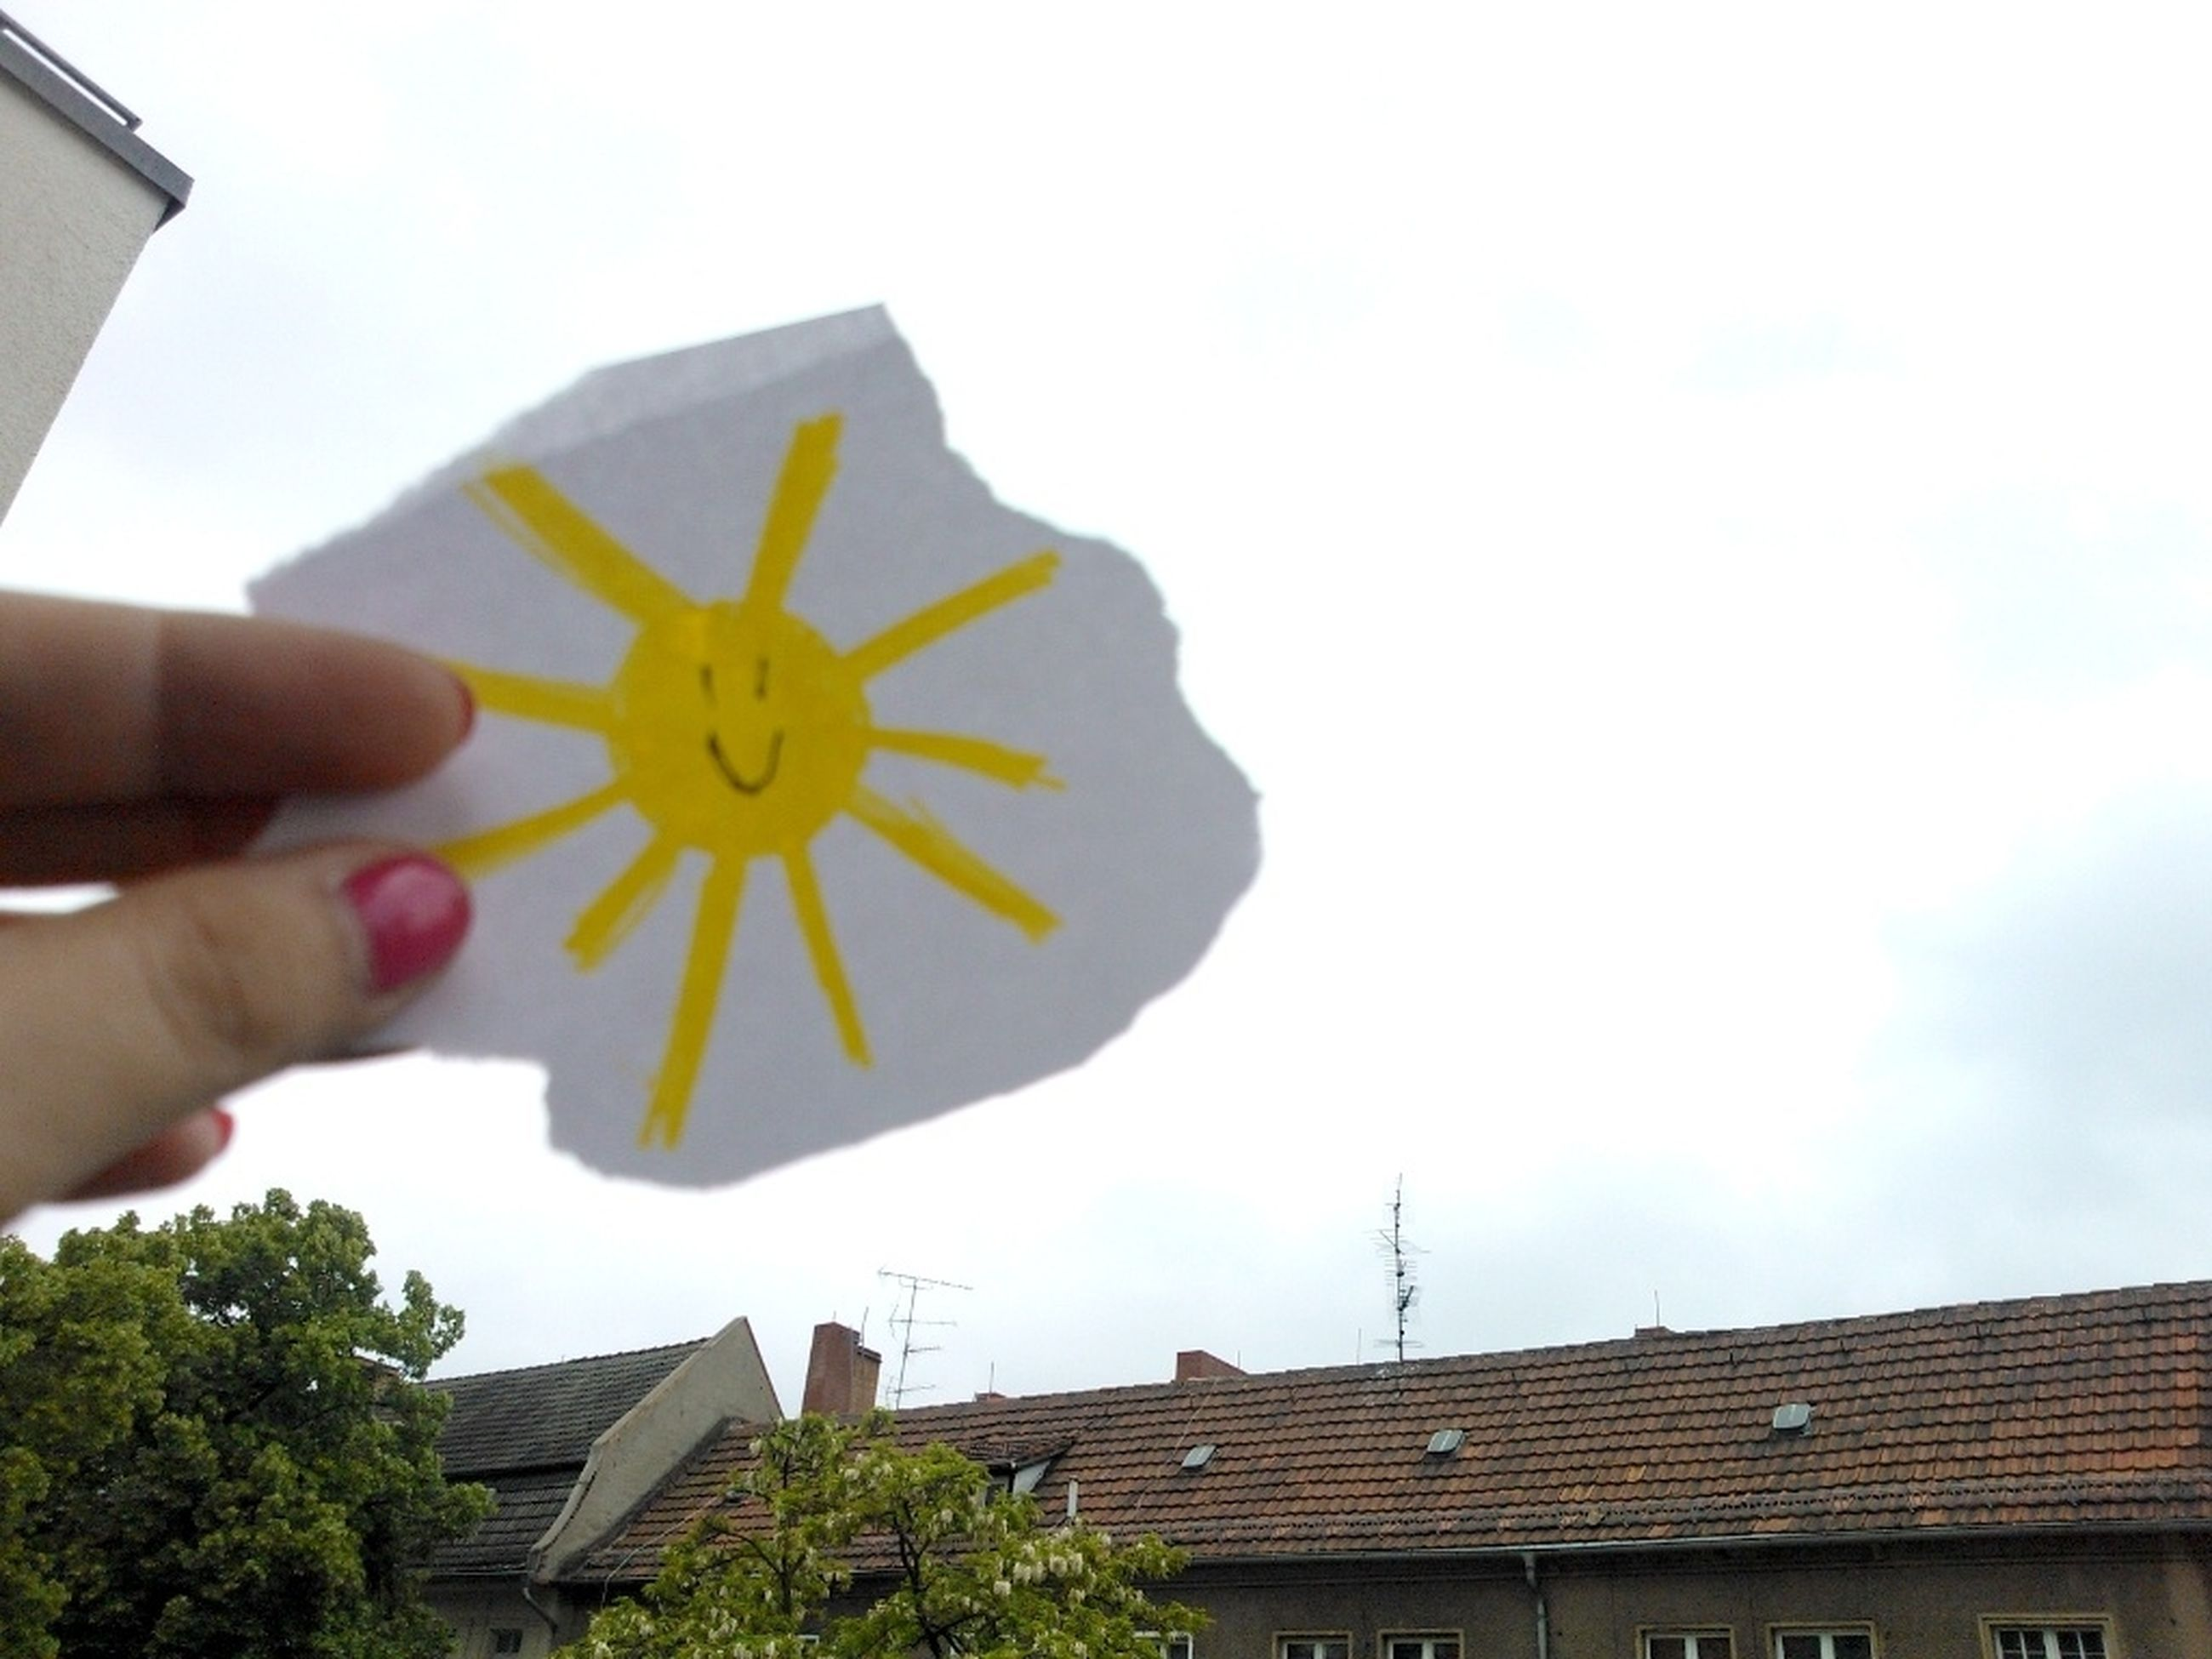 person, building exterior, architecture, built structure, cropped, holding, part of, sky, house, low angle view, roof, yellow, human finger, day, outdoors, unrecognizable person, flower